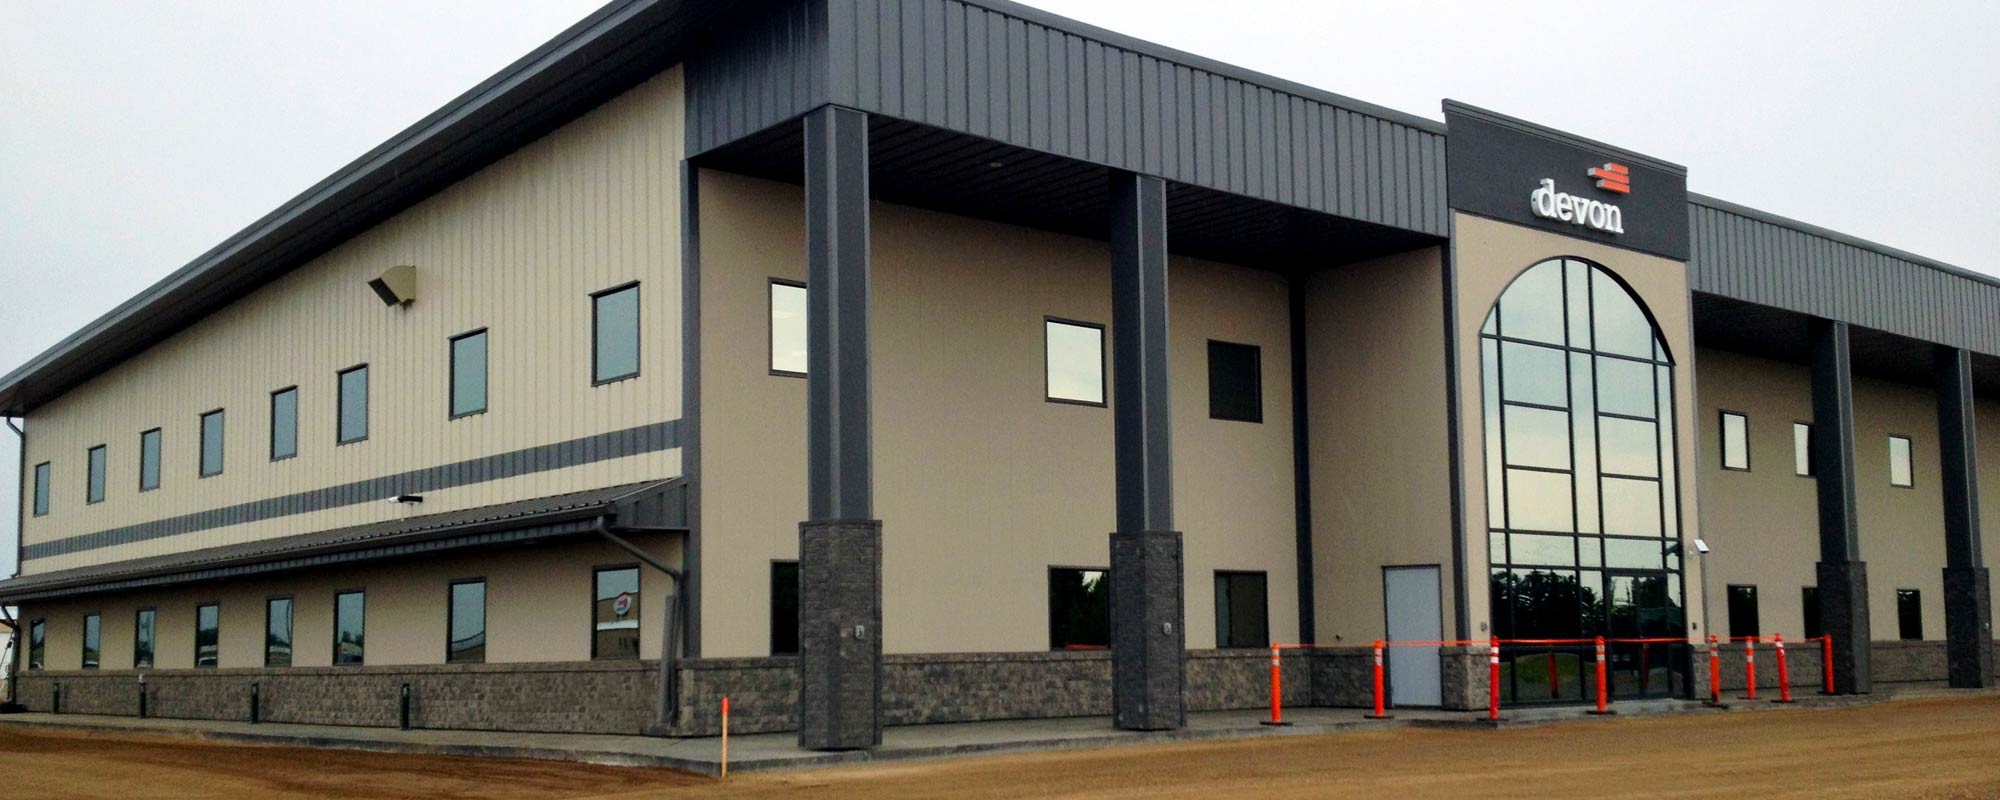 Steel Buildings and Cladding